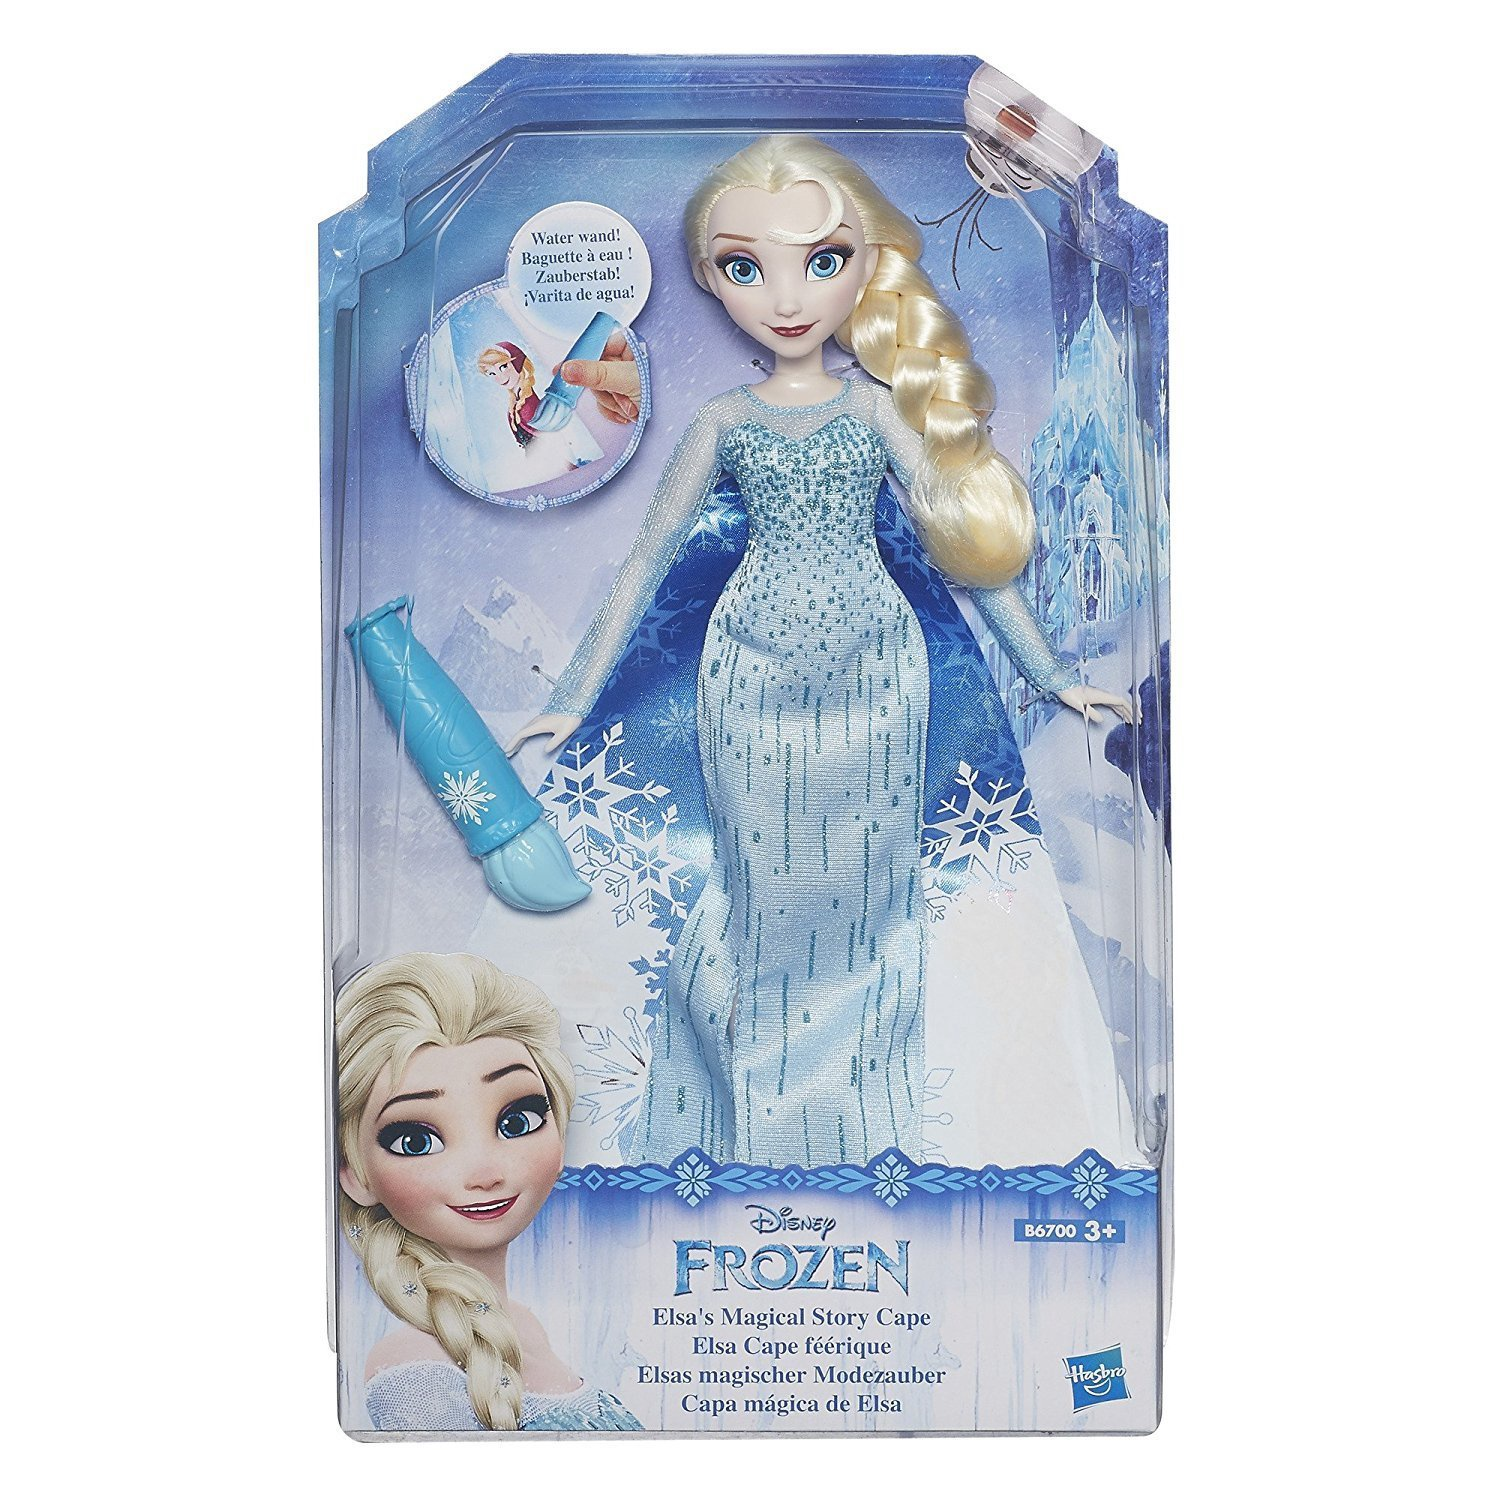 FROZEN ELSA MAGICAL STORY CAPE